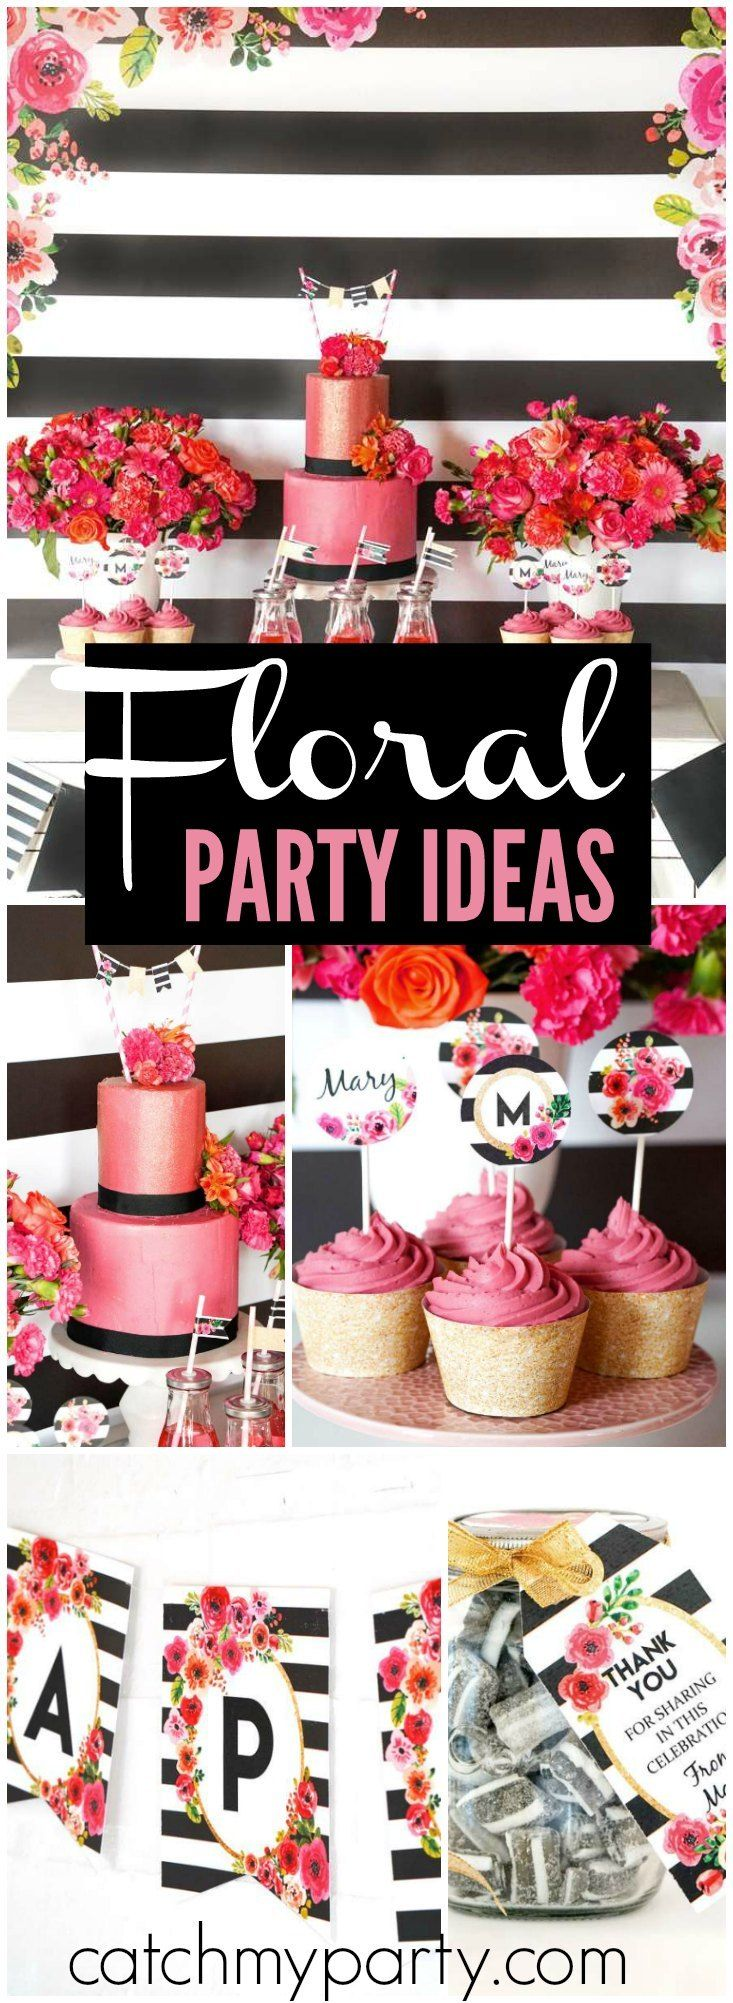 Such A Pretty Black And White Striped Floral Party See More Ideas At CatchMyParty